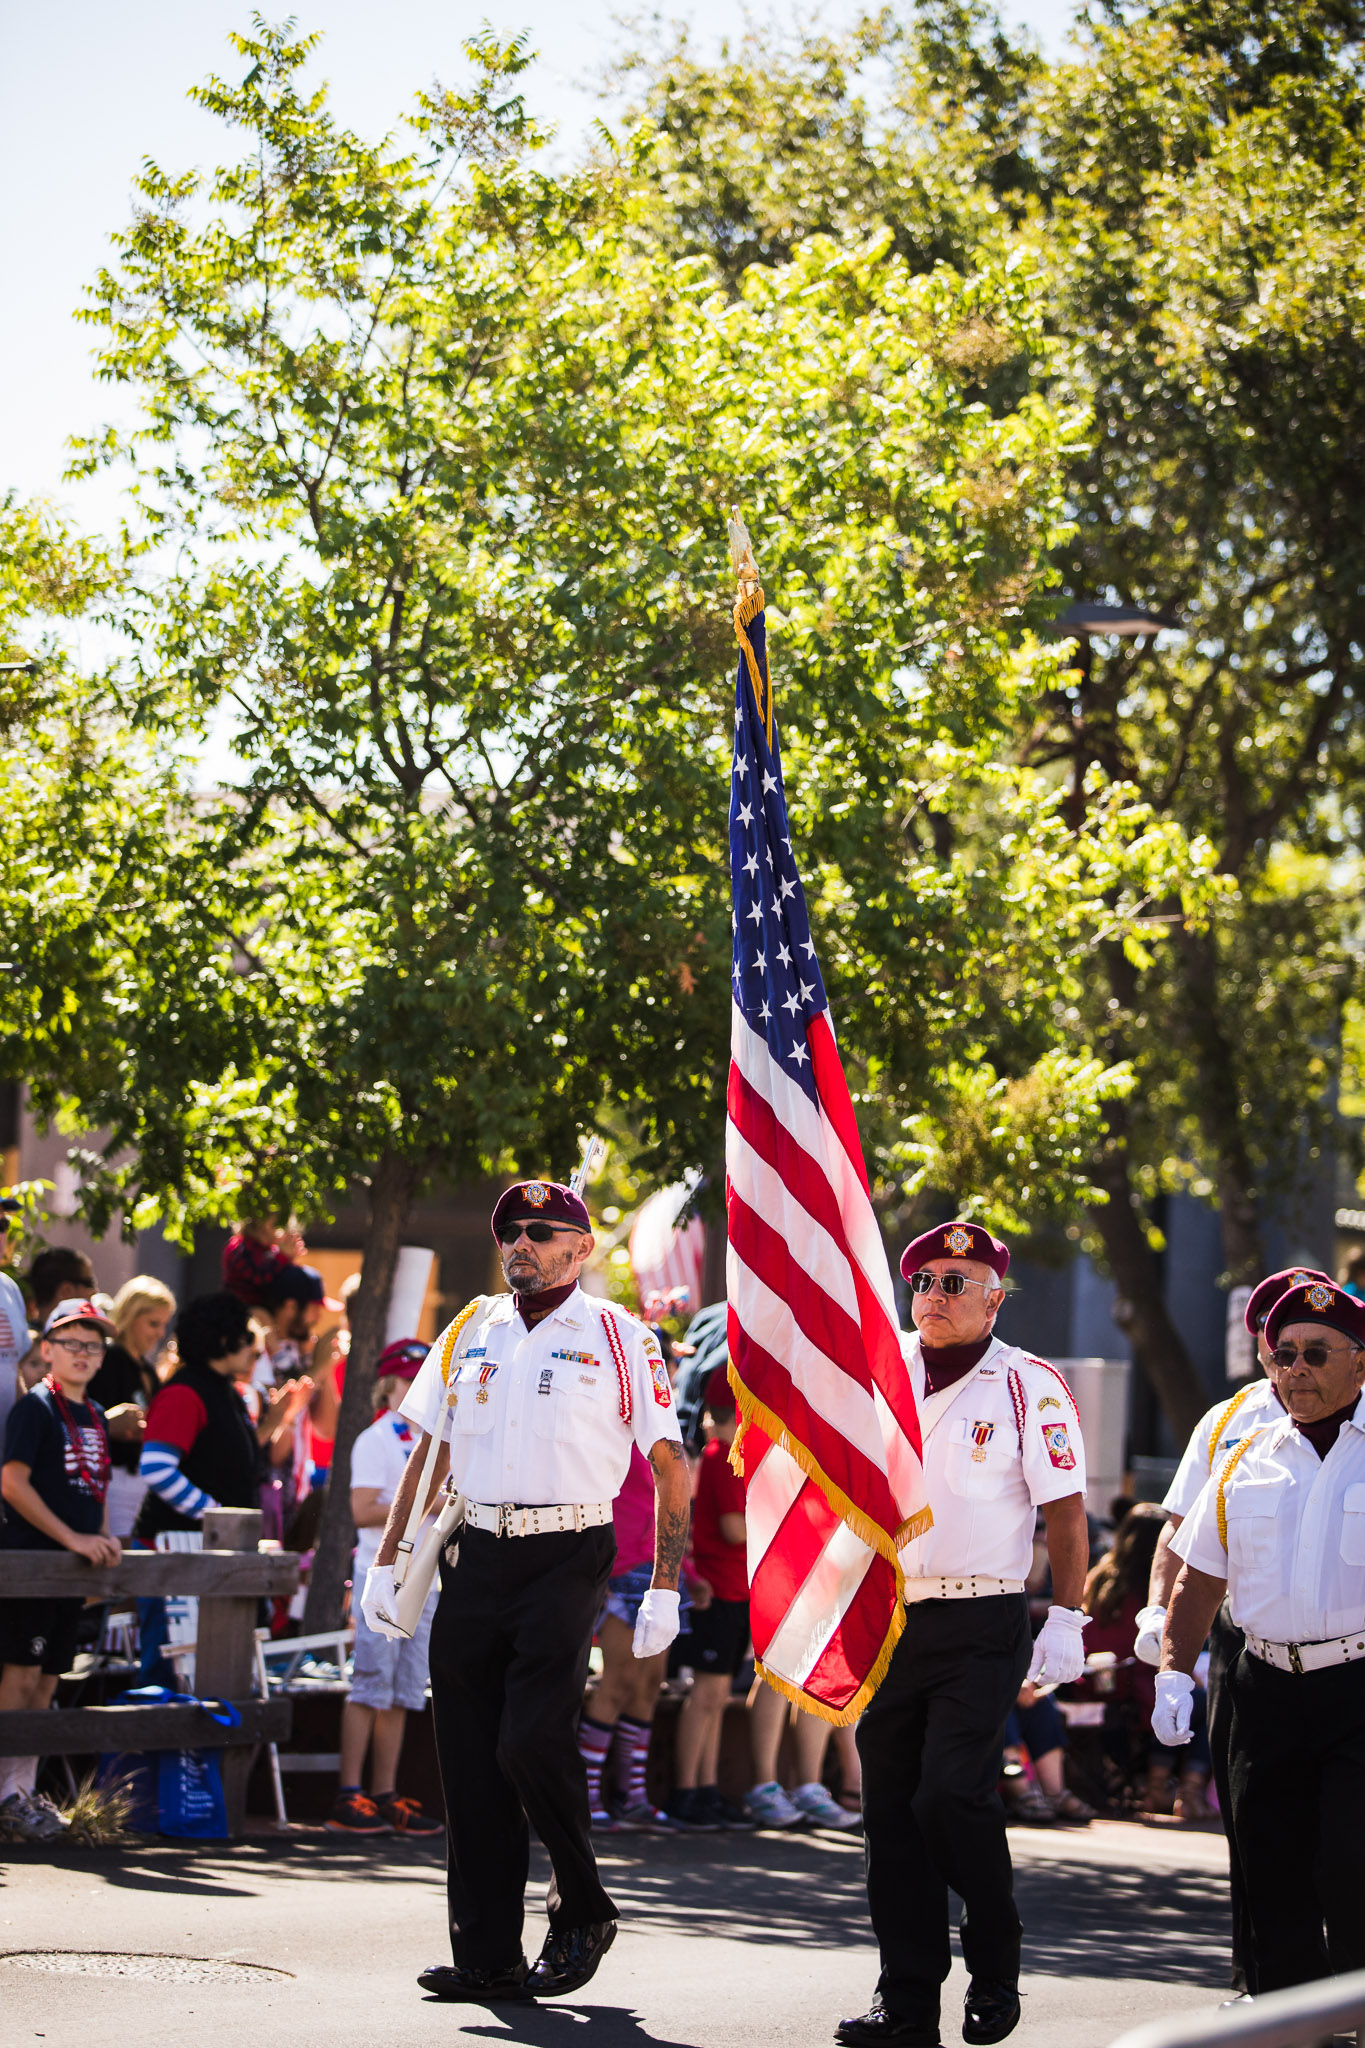 Archer_Inspired_Photography_Morgan_Hill_California_4th_of_july_parade-39.jpg